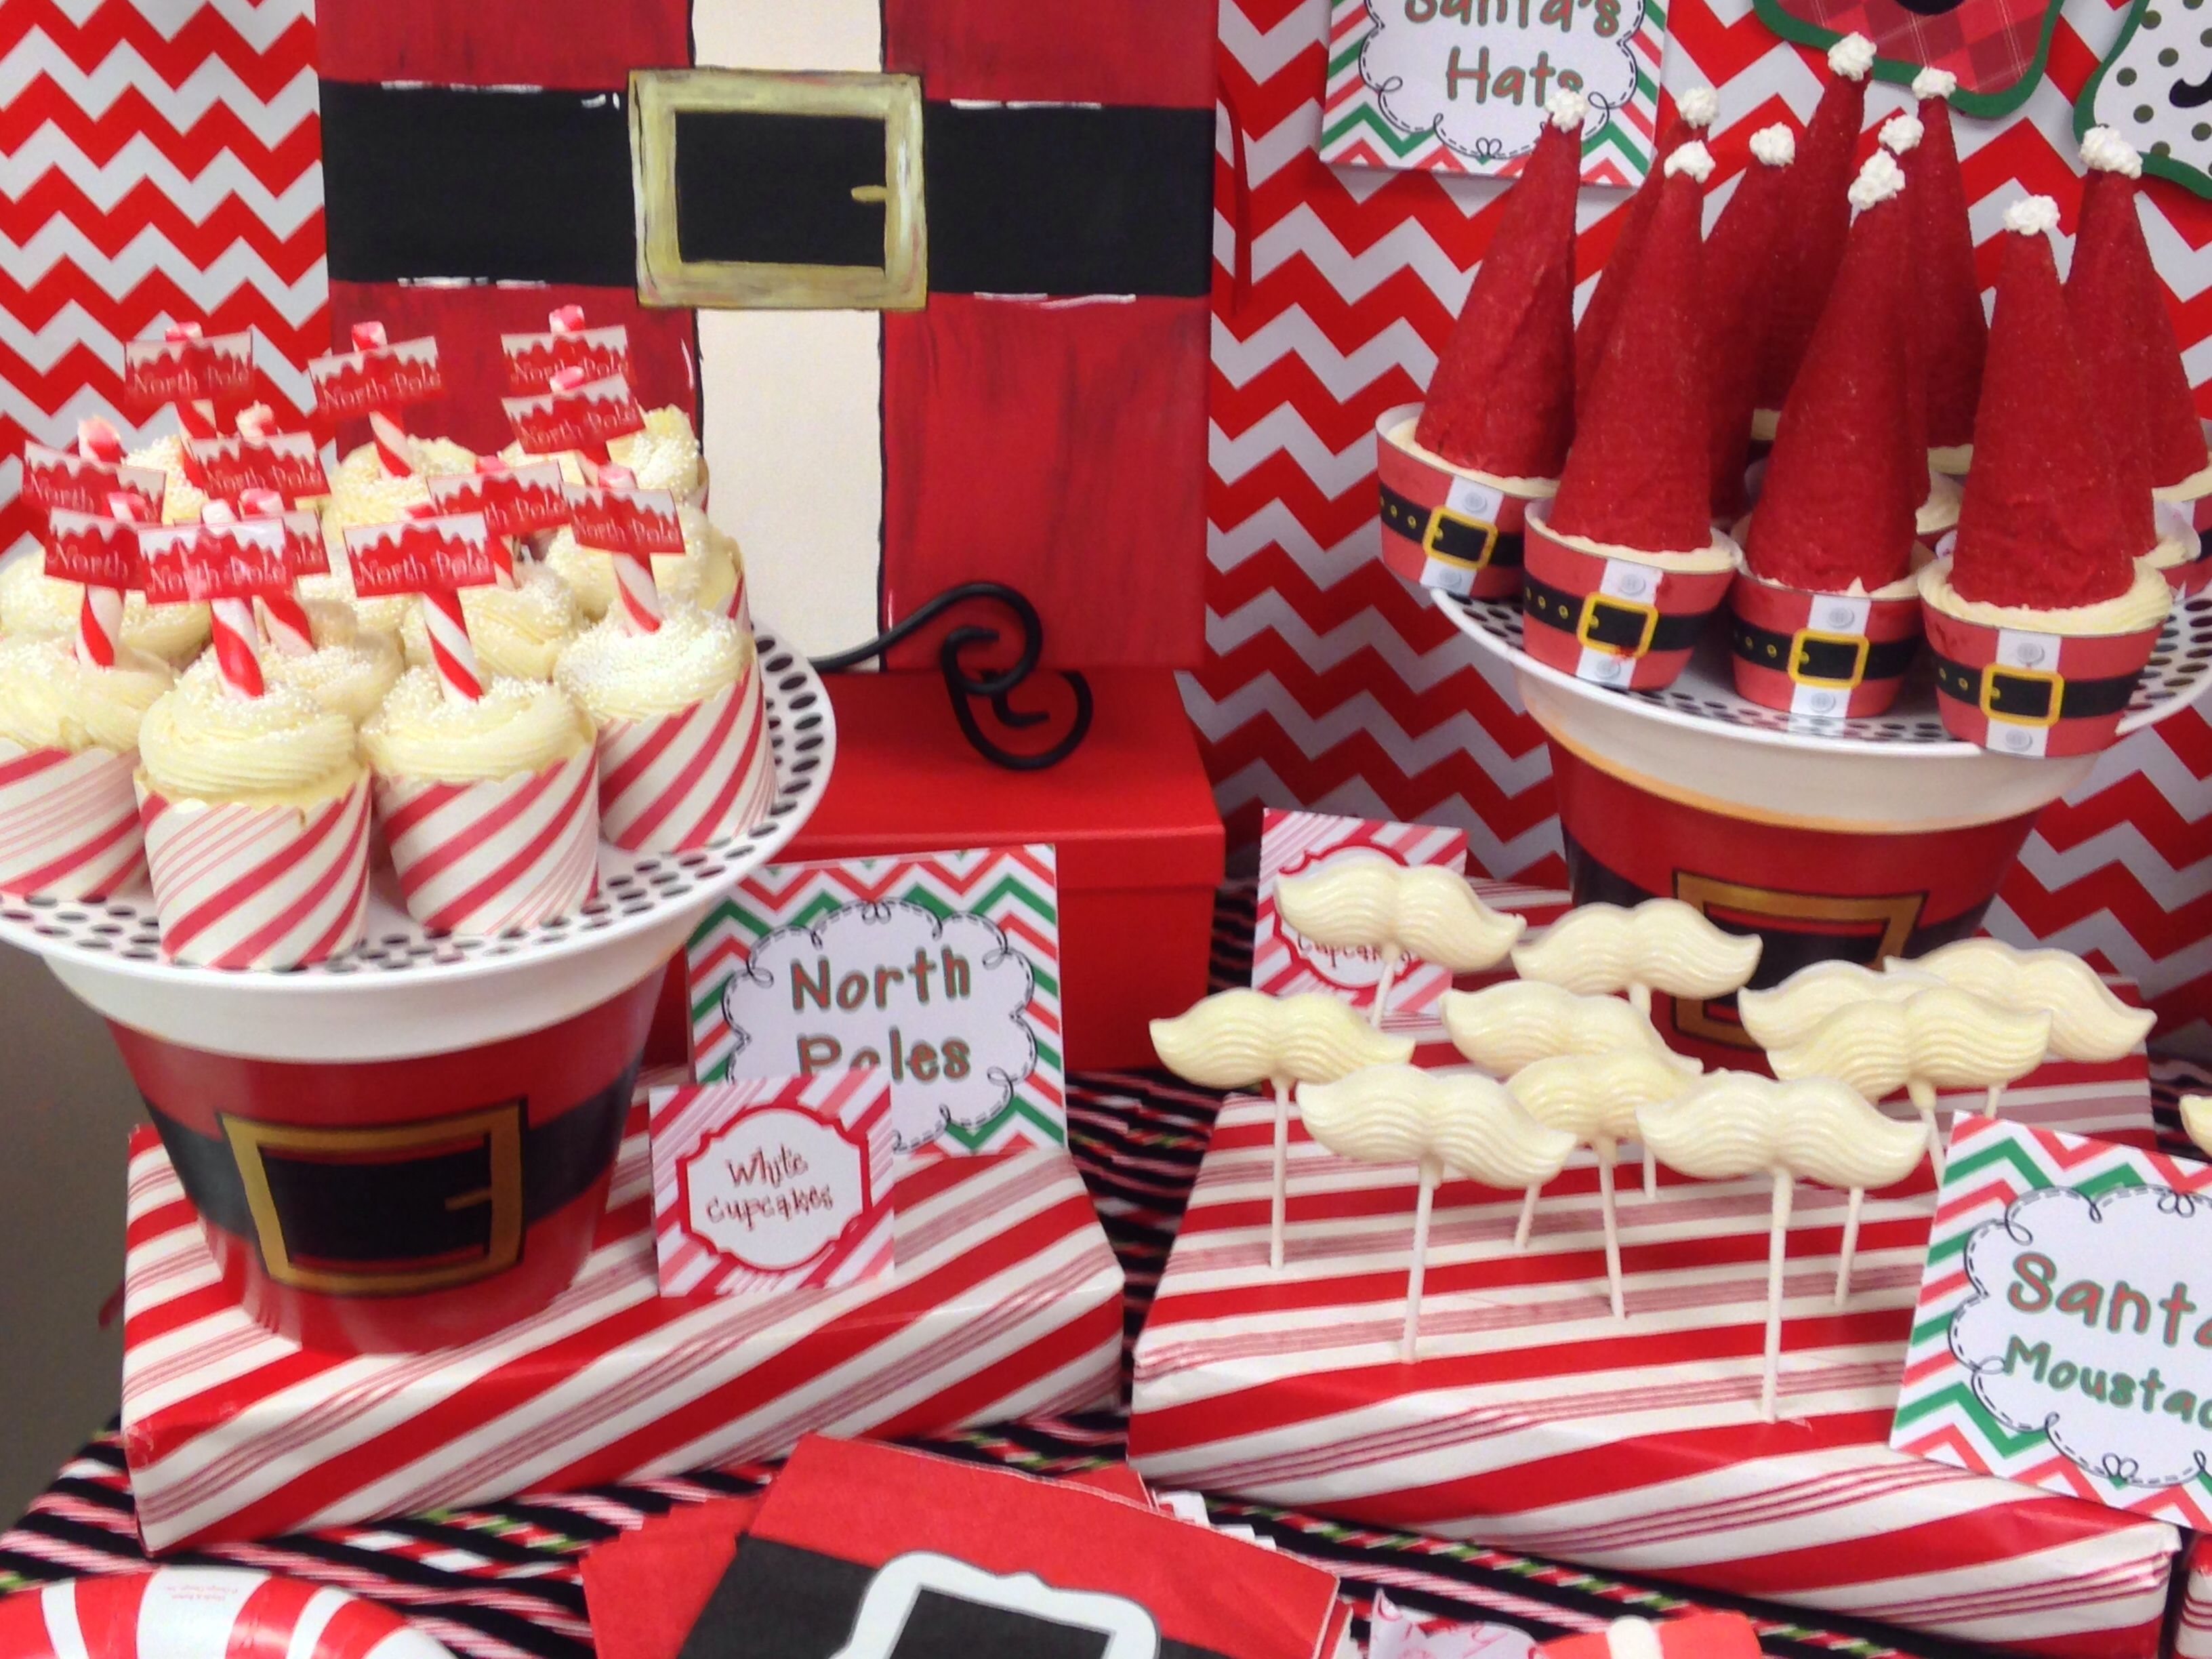 Polar Express cupcakes.  Santa's suit wrappers over red velvet cupcakes with sugar cone hats. Hats were dipped in red melting chocolate and sanded with red sanding sugar. North Pole cupcakes were vanilla cake with butter cream icing.